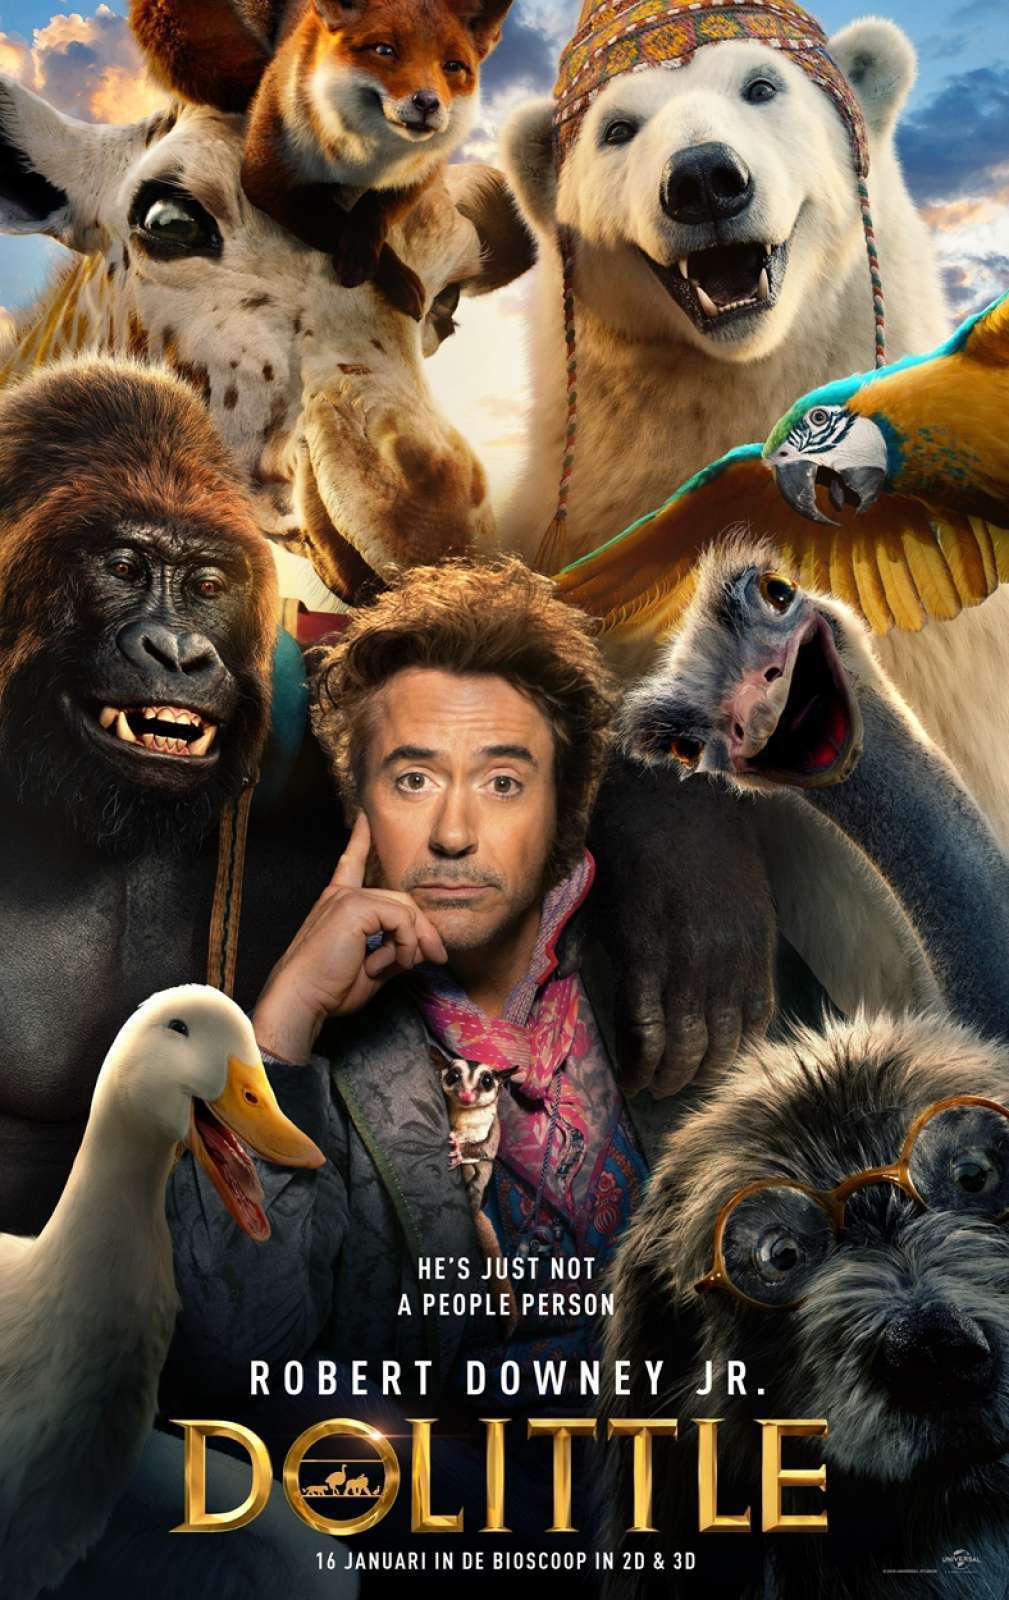 The Voyage of Doctor Dolittle Movie 2020 Free Online